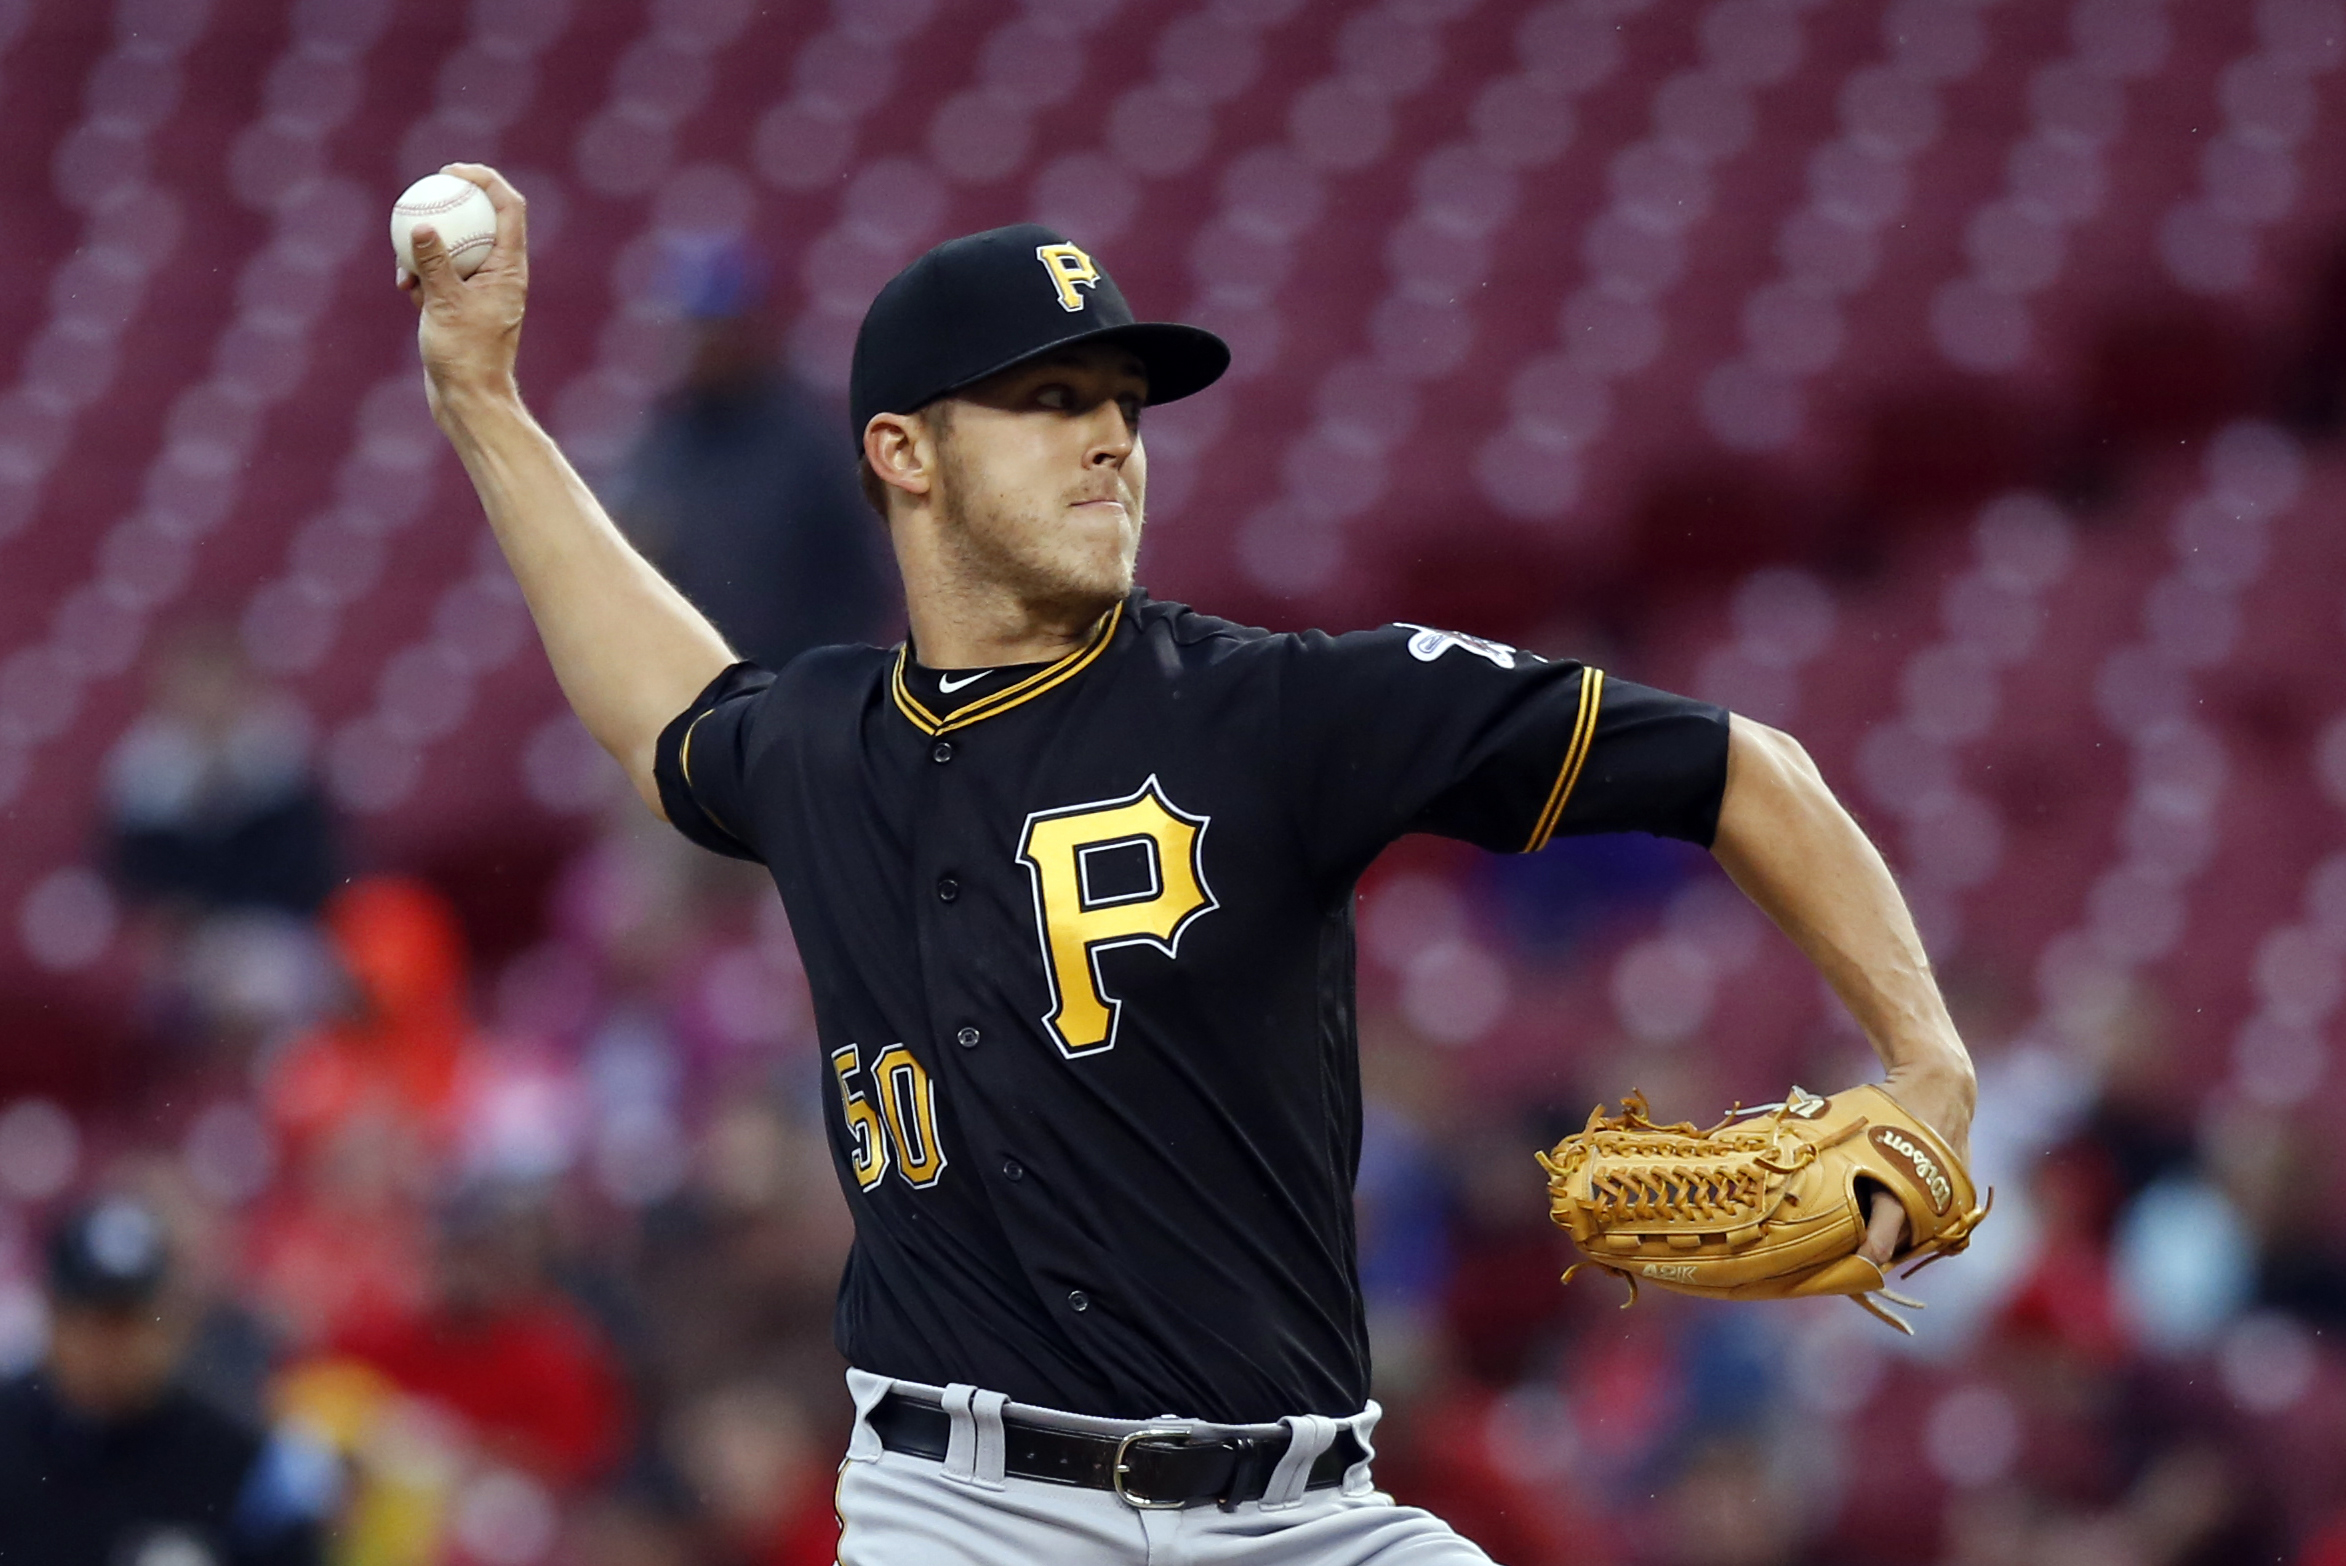 Pittsburgh Pirates: Jameson Taillon to Make Rehab Start After Cancer Surgery